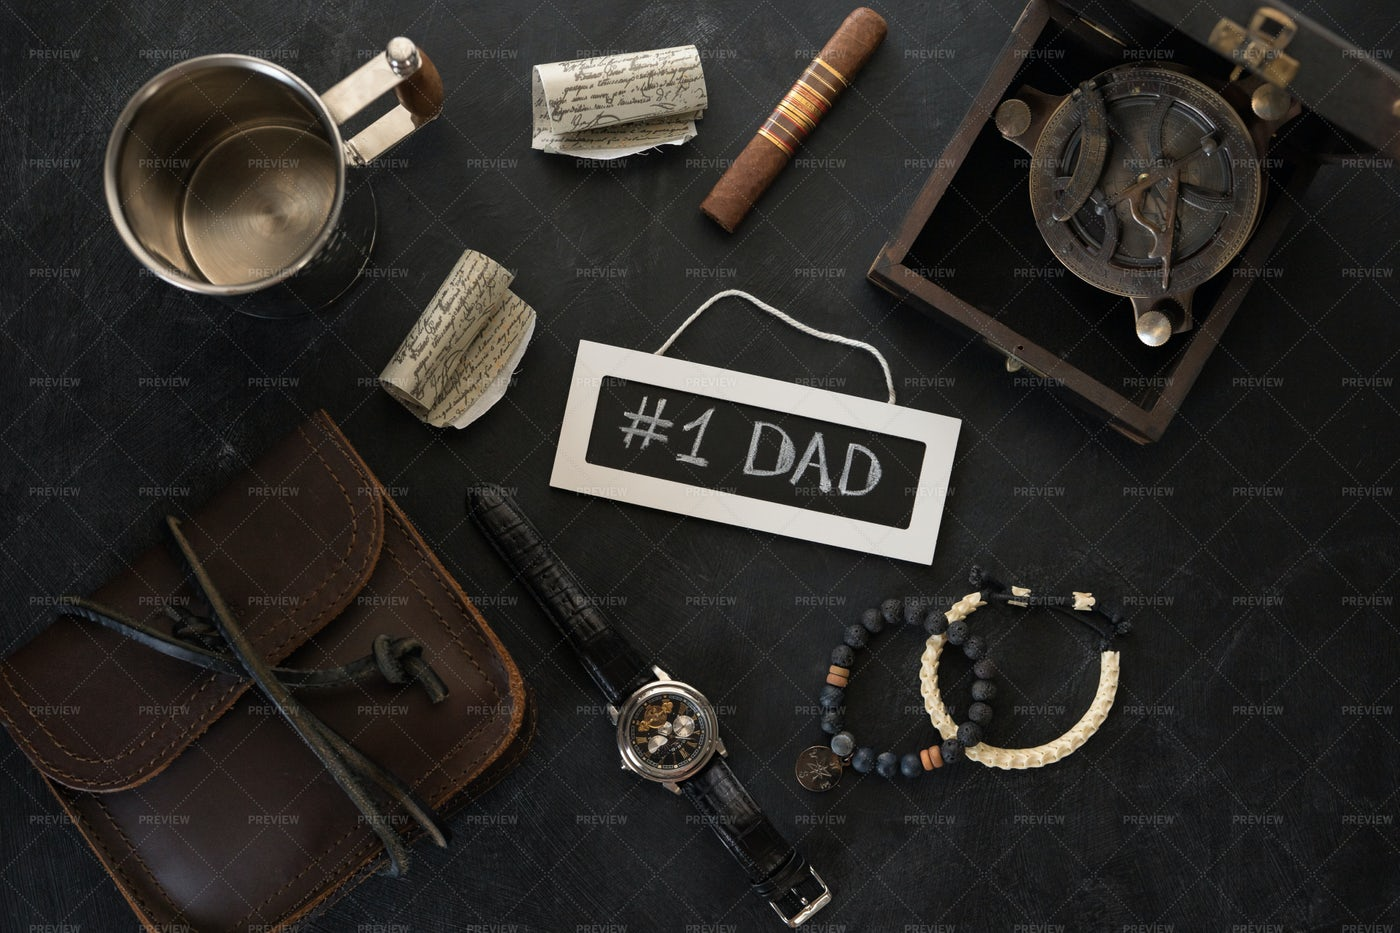 Father's Day Gift Ideas: Stock Photos